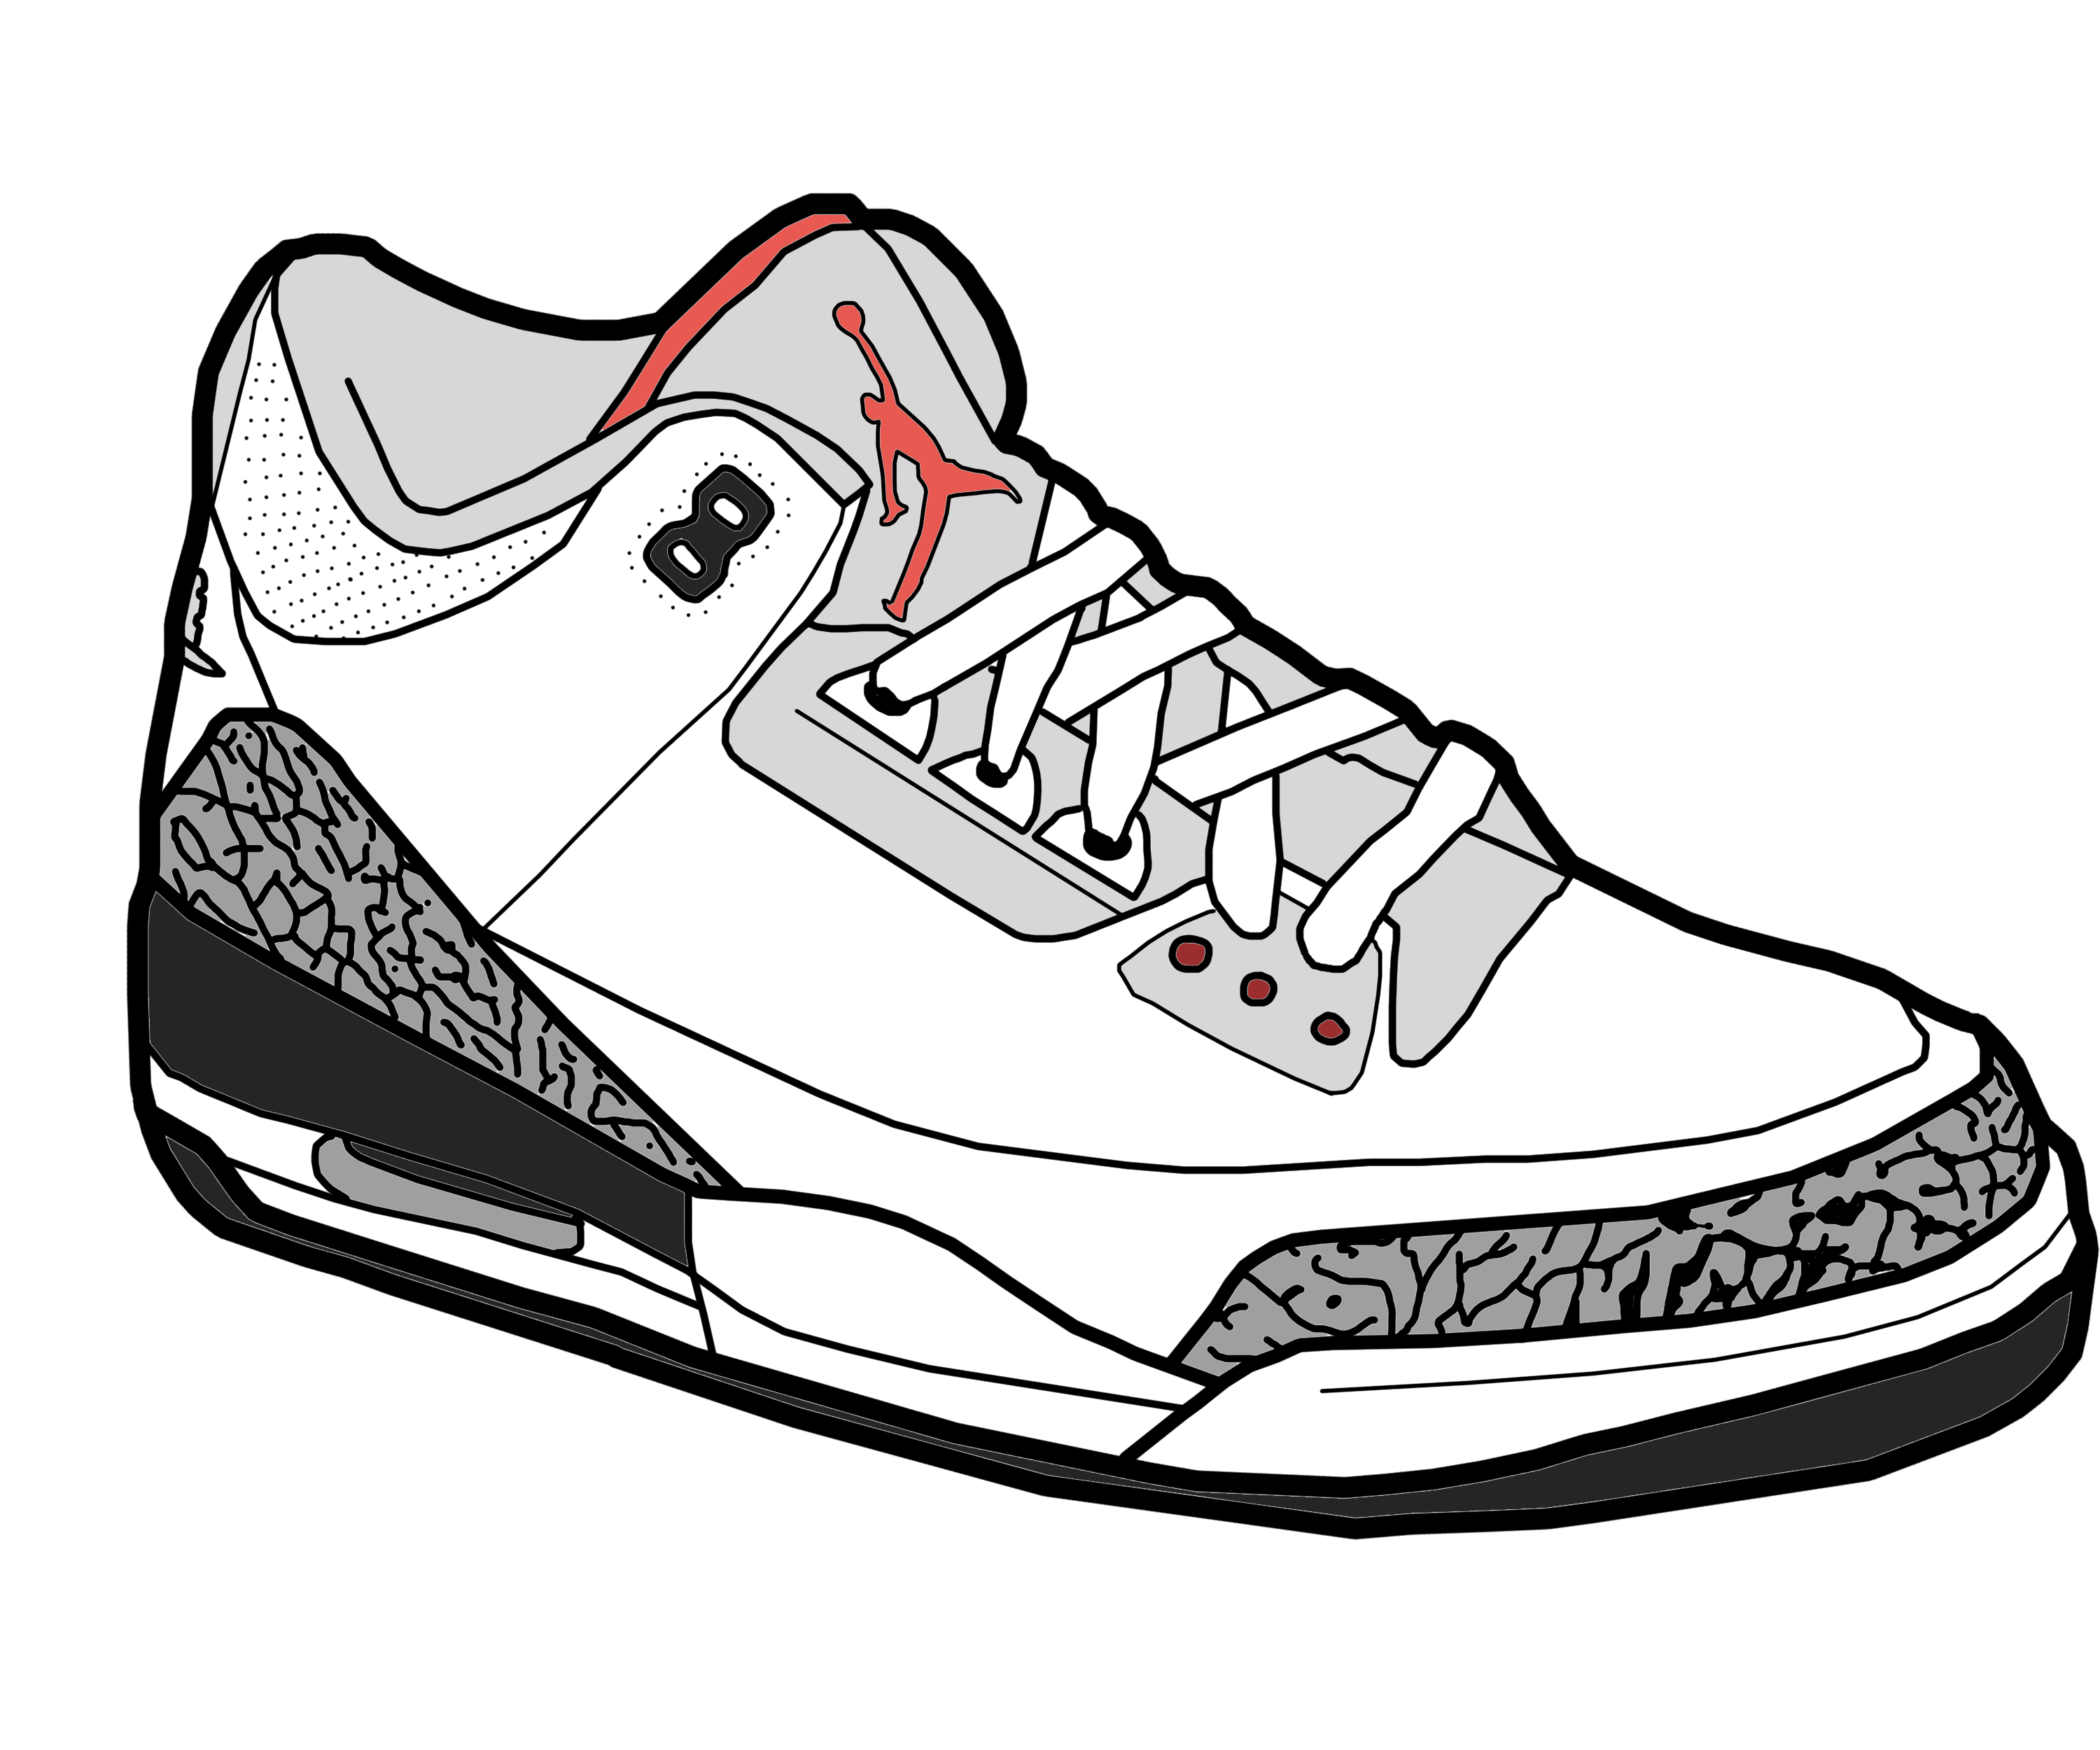 Jordans transparent clipart. Nike jordan shoe pencil